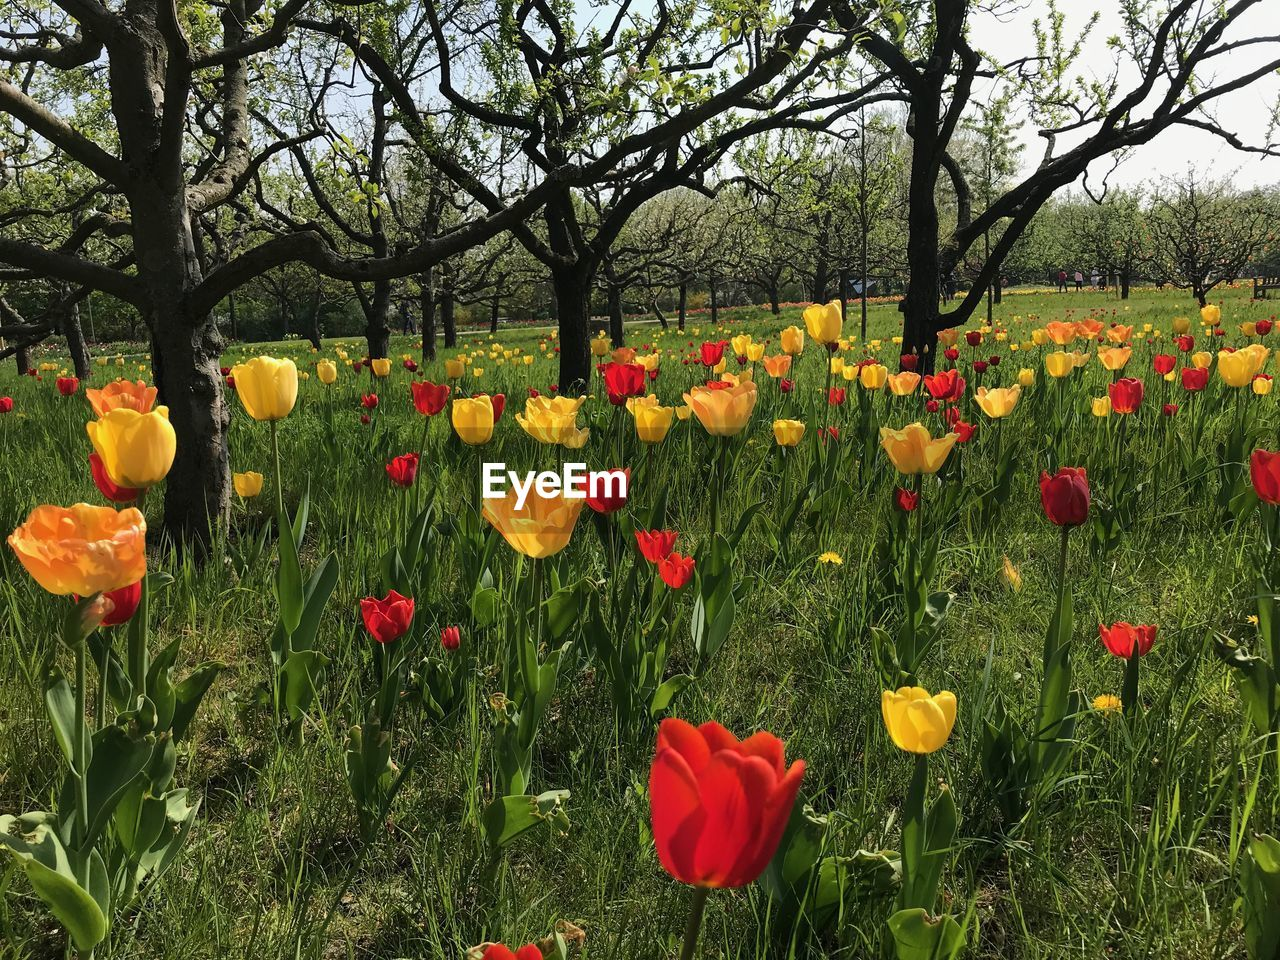 plant, flowering plant, flower, growth, fragility, beauty in nature, vulnerability, freshness, tree, land, nature, field, petal, no people, flower head, yellow, inflorescence, day, multi colored, park, tulip, outdoors, springtime, flowerbed